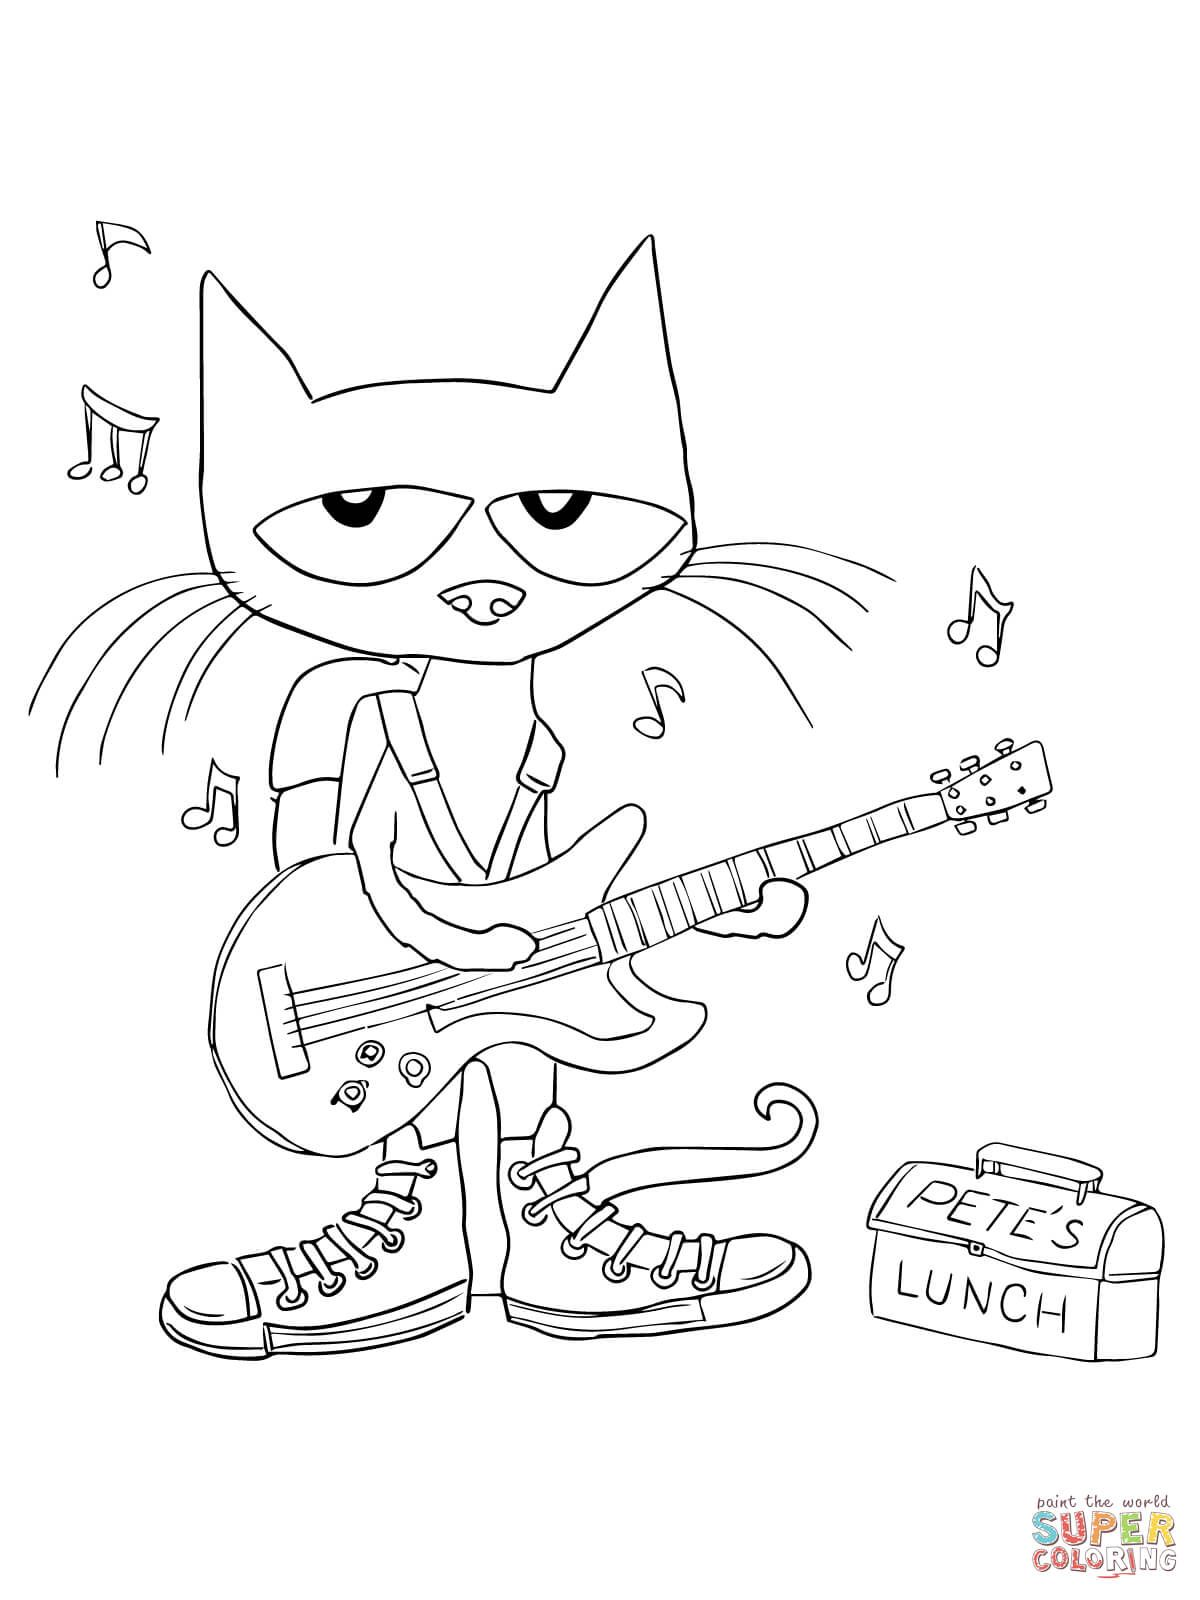 Pete the cat i love my white shoes coloring page free printable